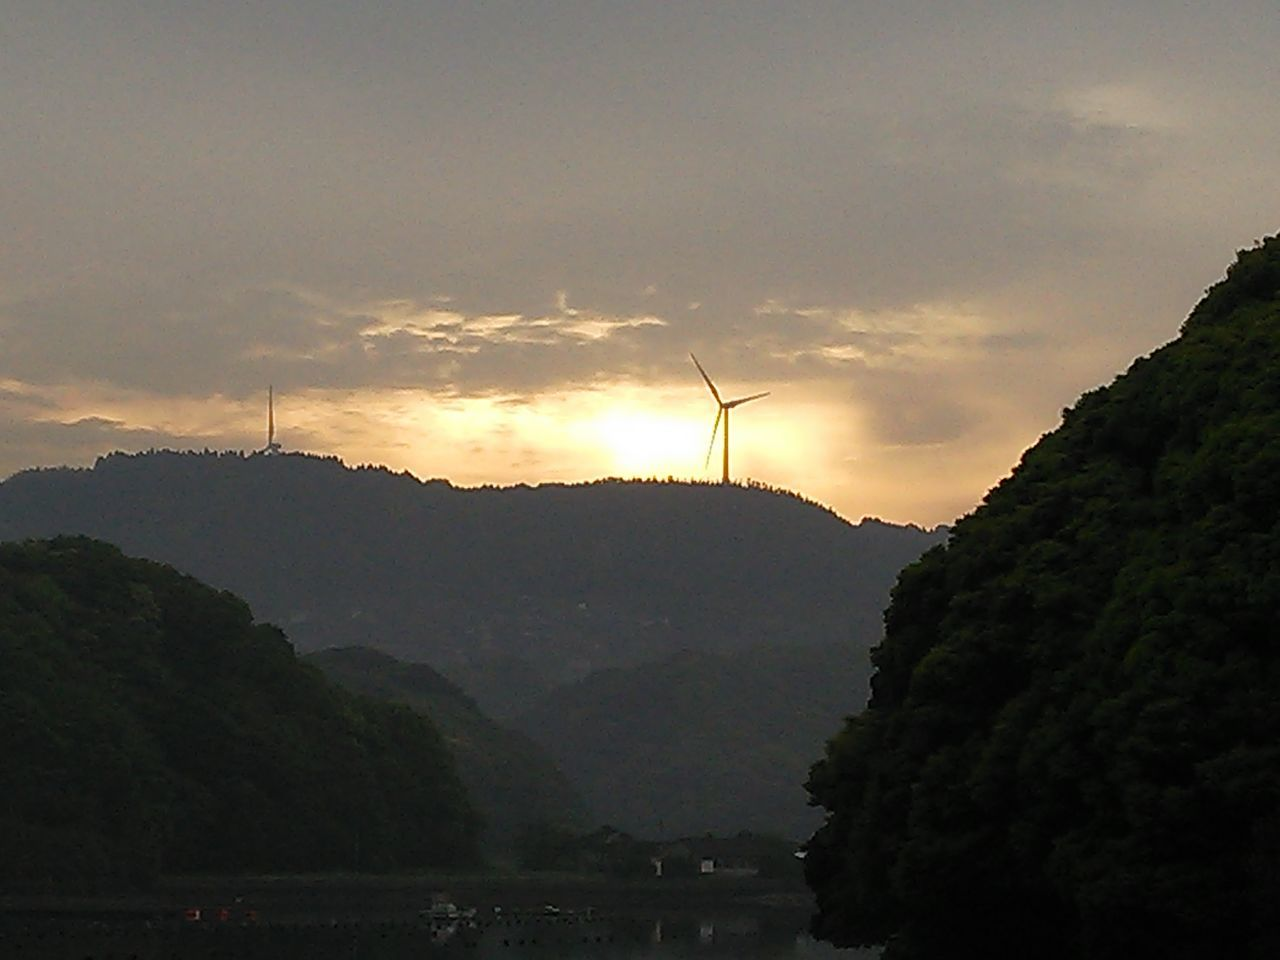 environmental conservation, beauty in nature, fuel and power generation, tree, nature, sky, alternative energy, sunset, renewable energy, mountain, silhouette, outdoors, scenics, cloud - sky, no people, sun, tranquil scene, tranquility, wind power, windmill, wind turbine, low angle view, day, industrial windmill